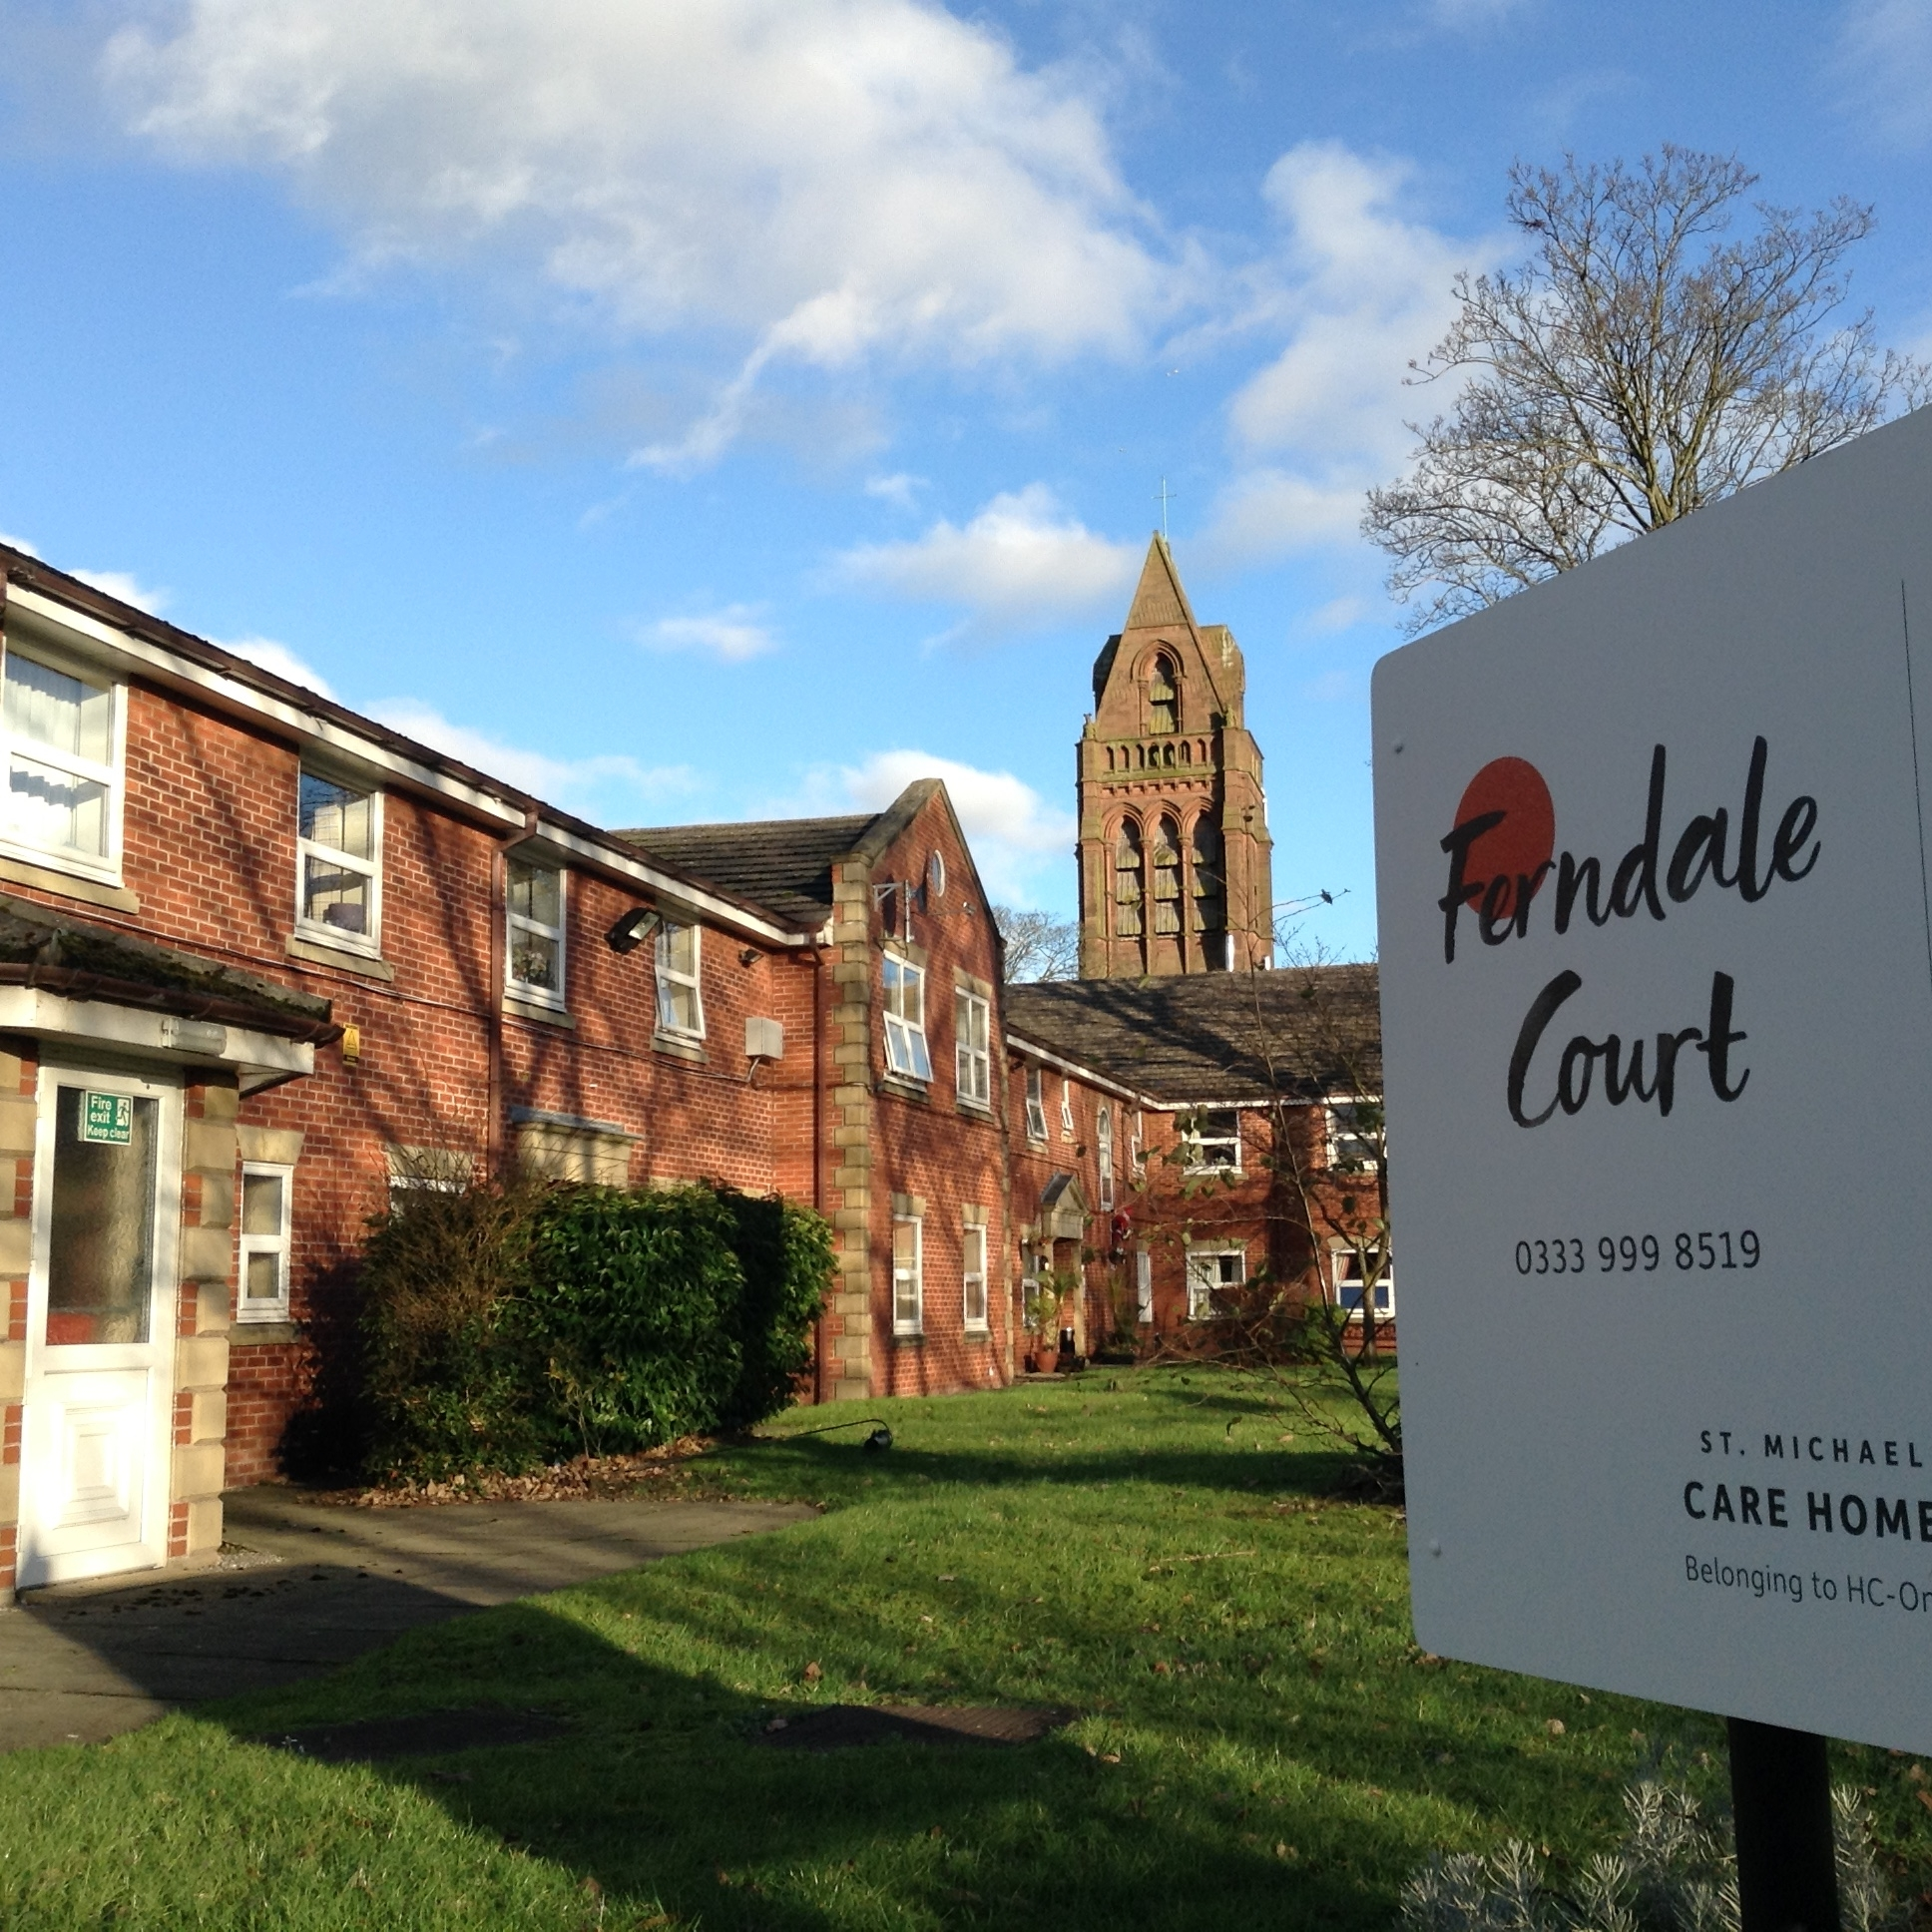 Ferndale Court care home on St Michael's Road in Ditton ordered to improve by inspectors